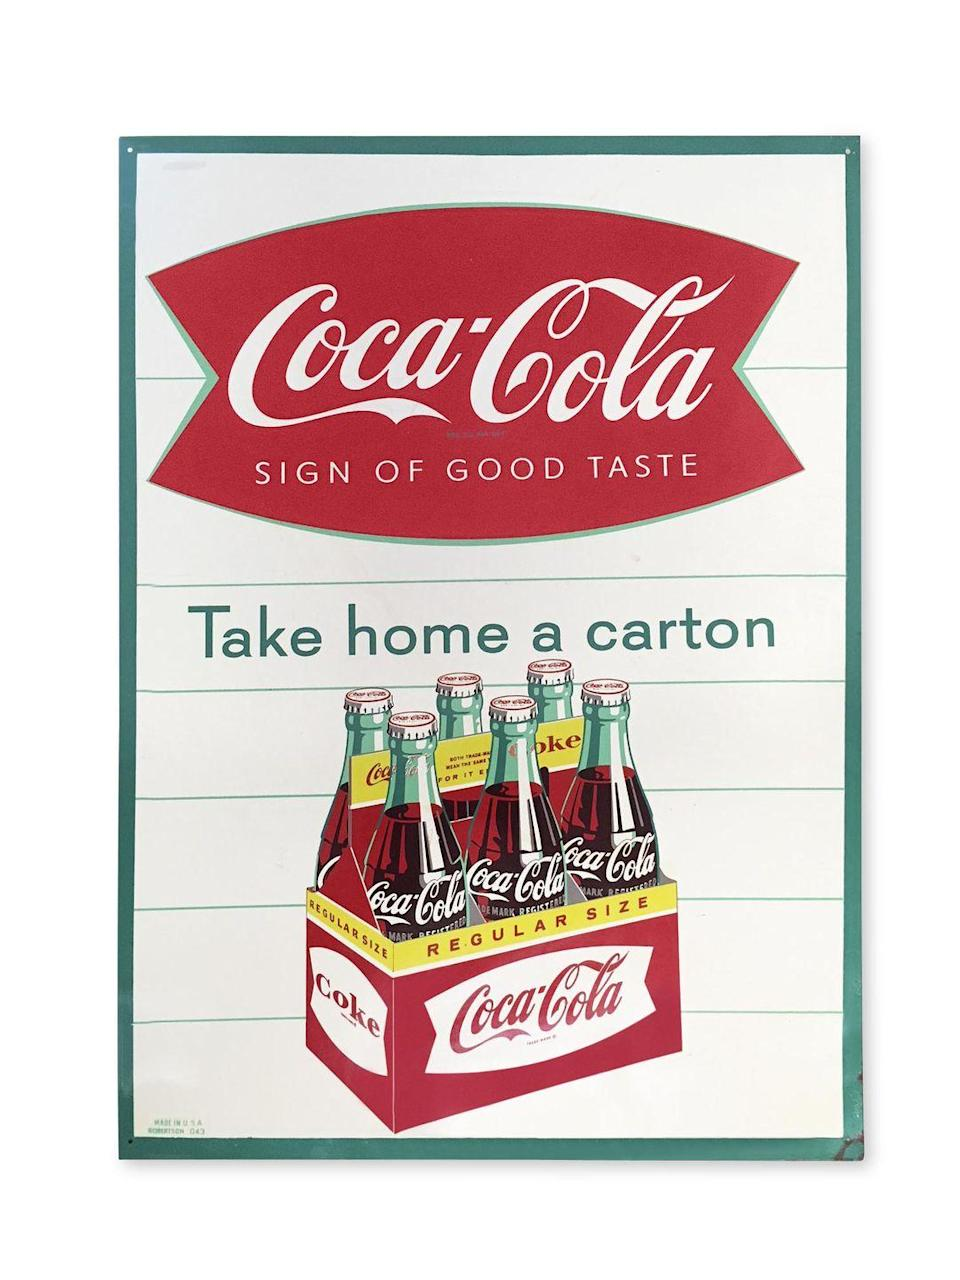 <p>Vintage-style ads are popular for home decor , making actual vintage advertising signs highly sought after as well. Everything from soft drinks to gasoline can get you paid. (This is especially true for anything with Coca-Cola branding.)</p><p><strong>What it's worth: </strong>Up to $15,000<br></p>